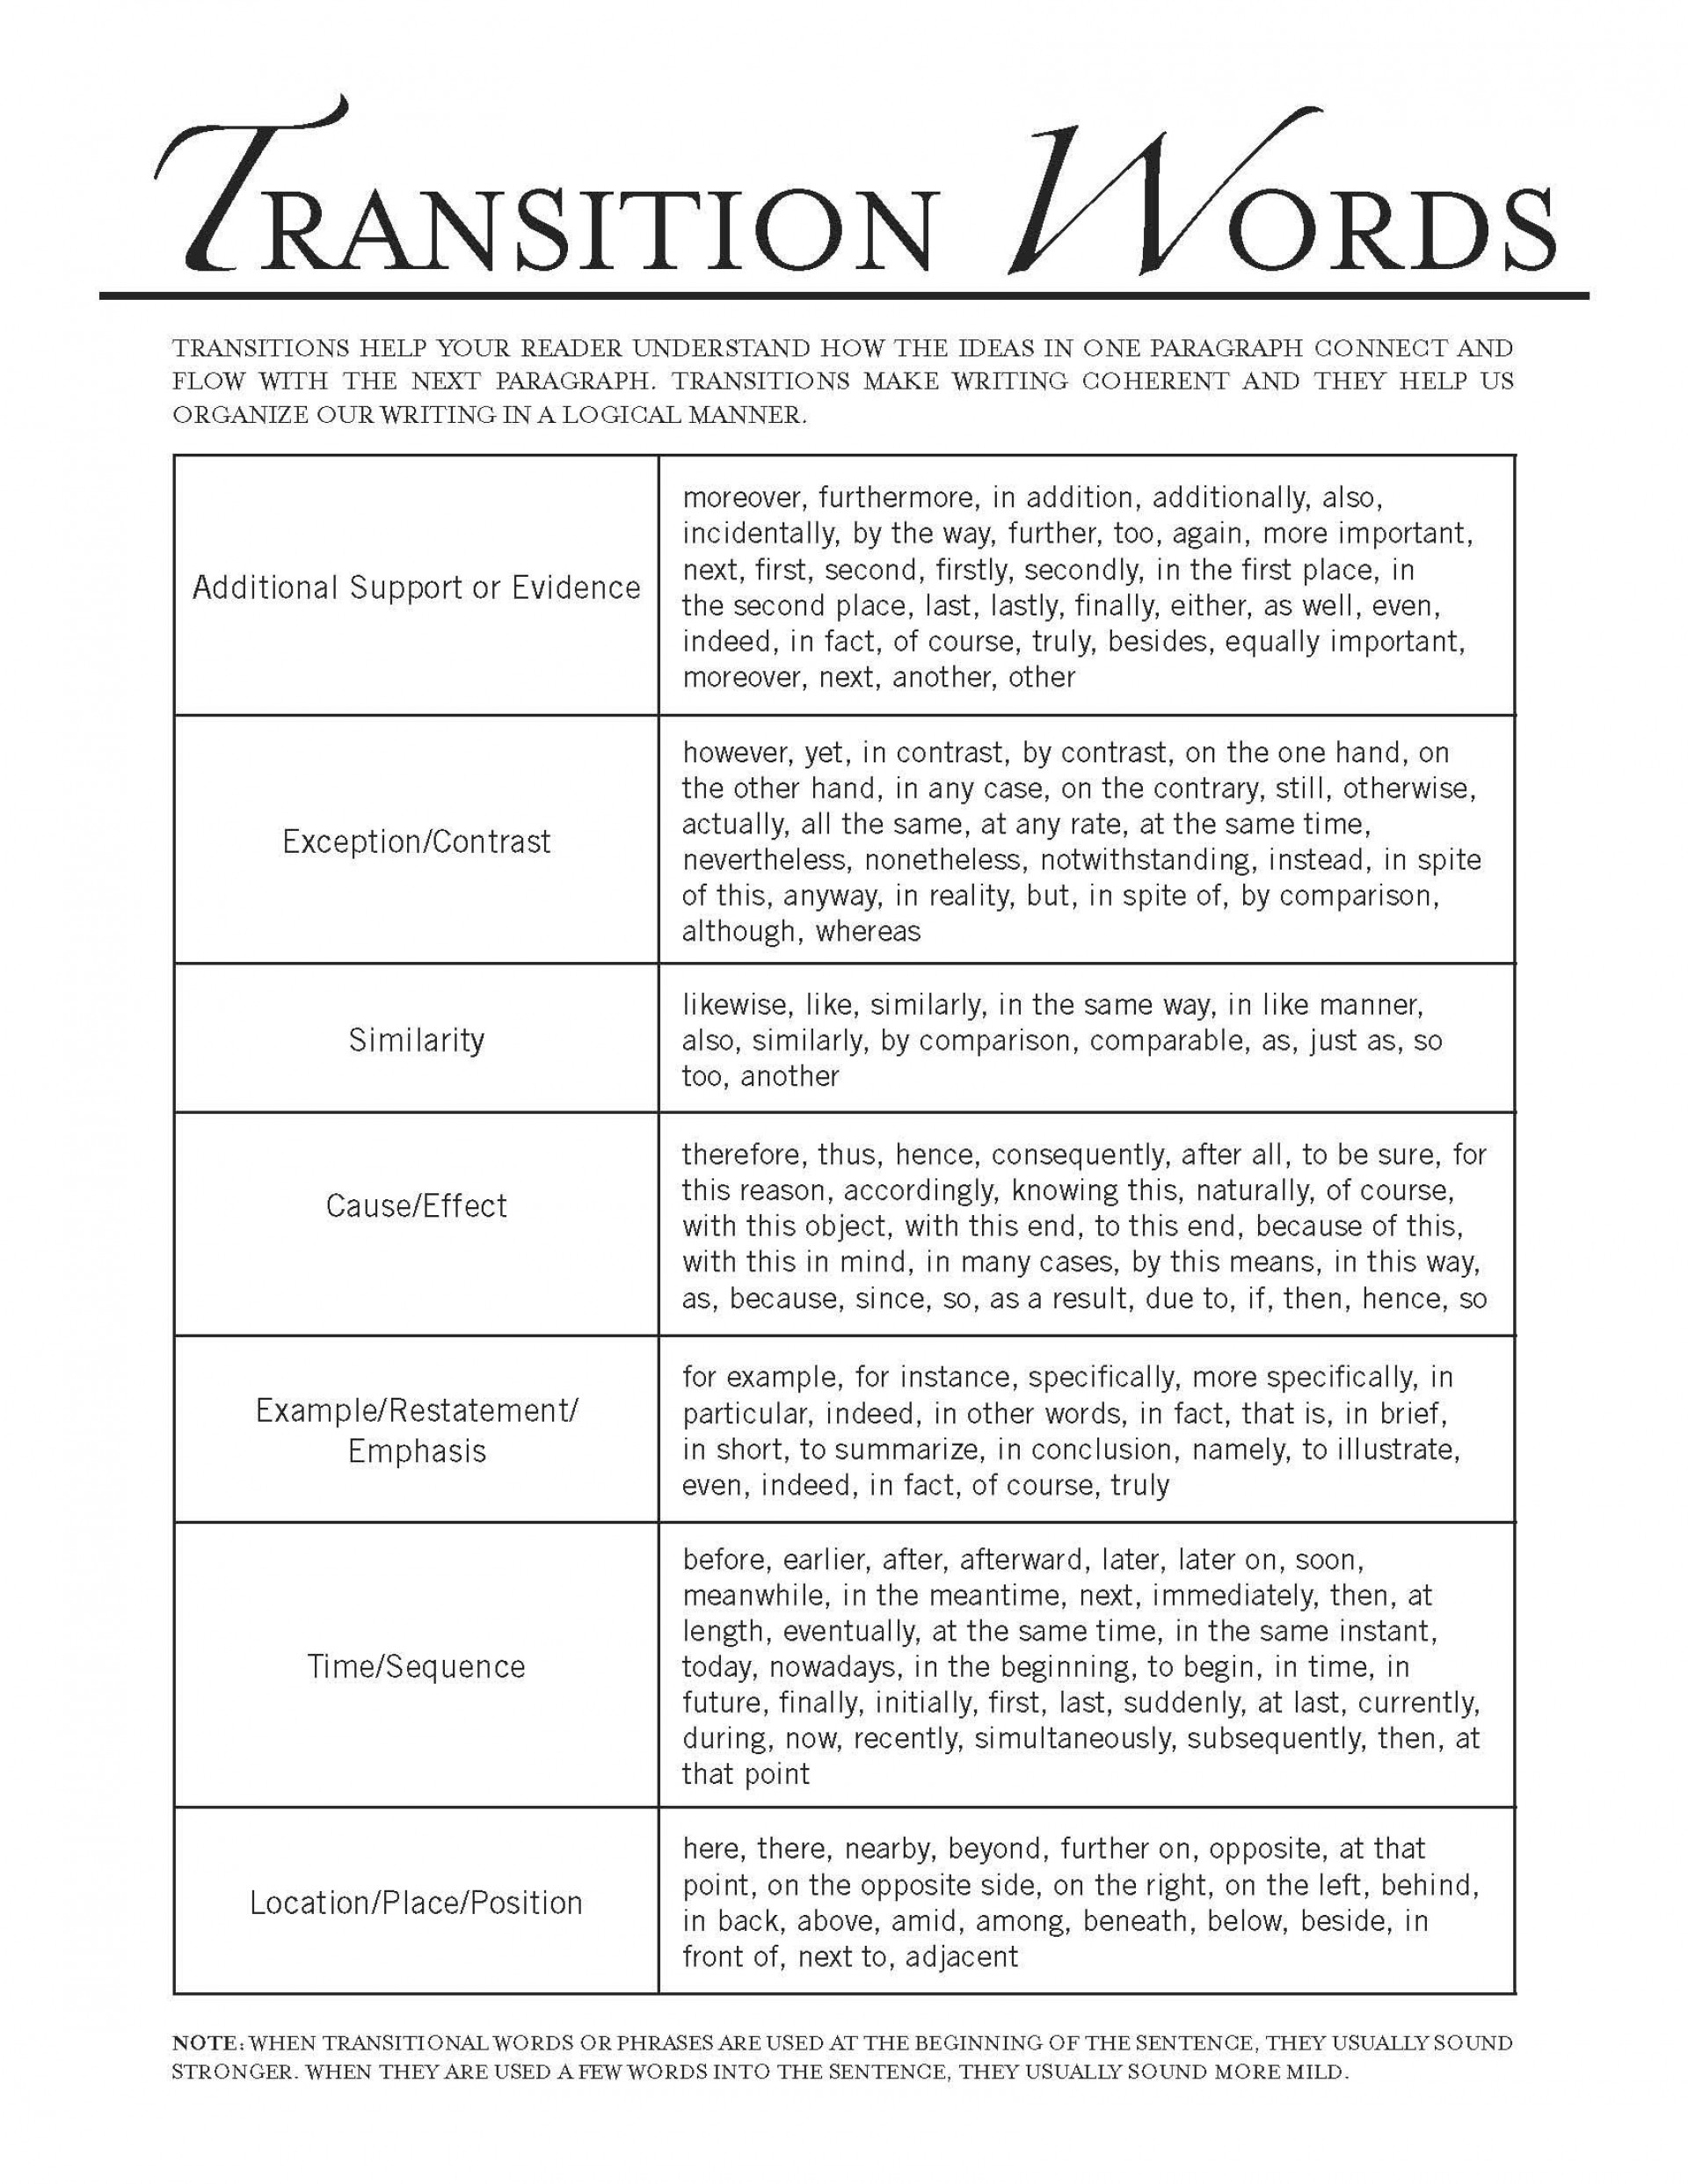 012 Quiz Worksheet Sequence Transition Word Examples Essay